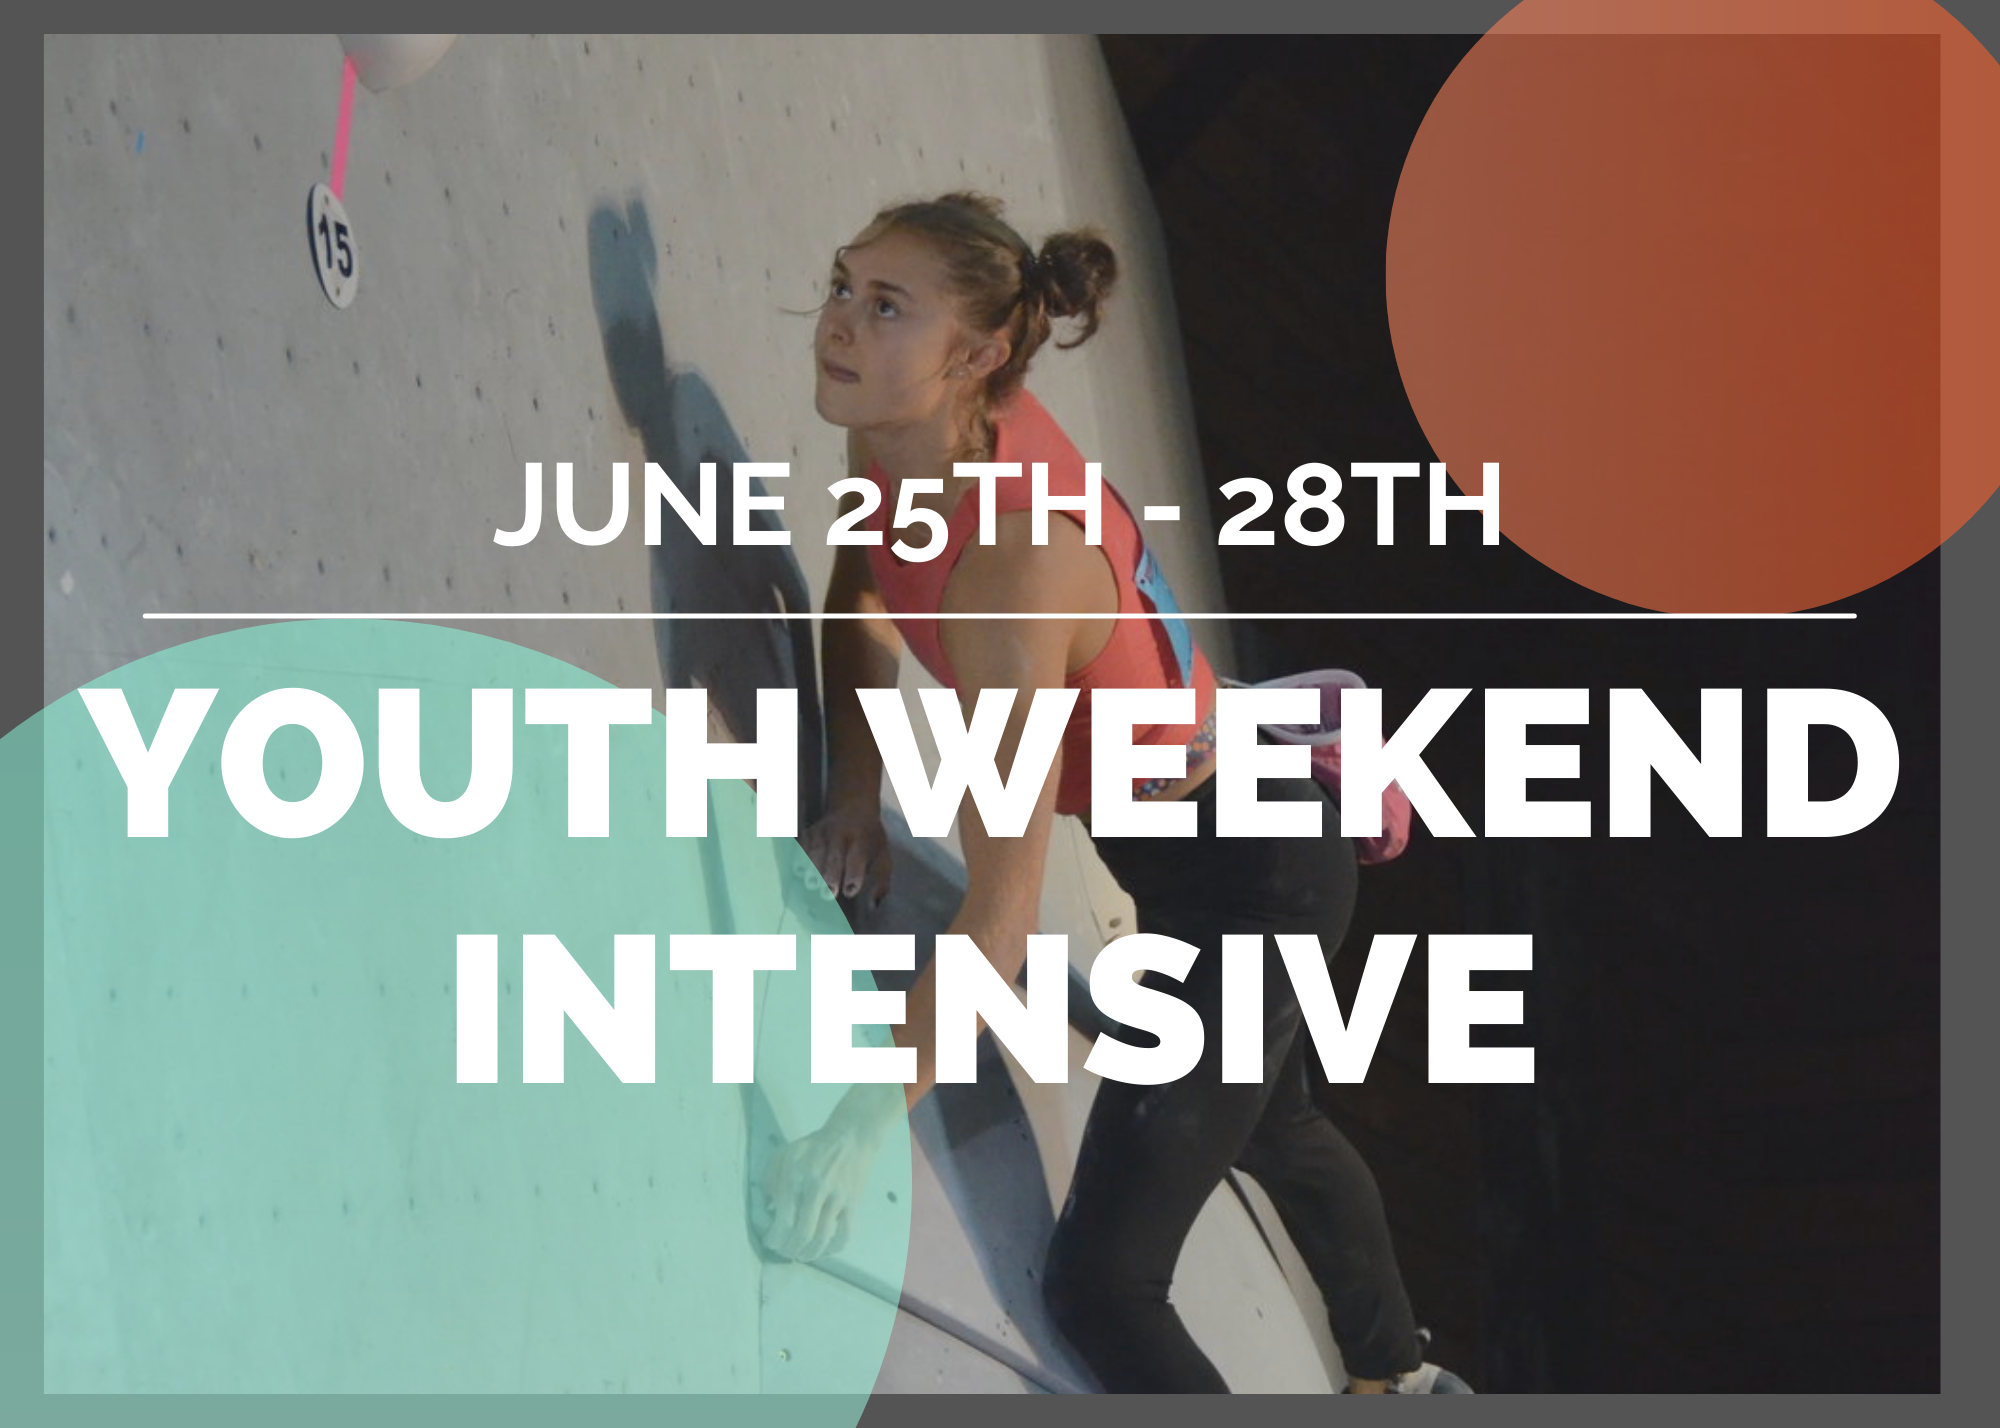 Youth Weekend Intensive